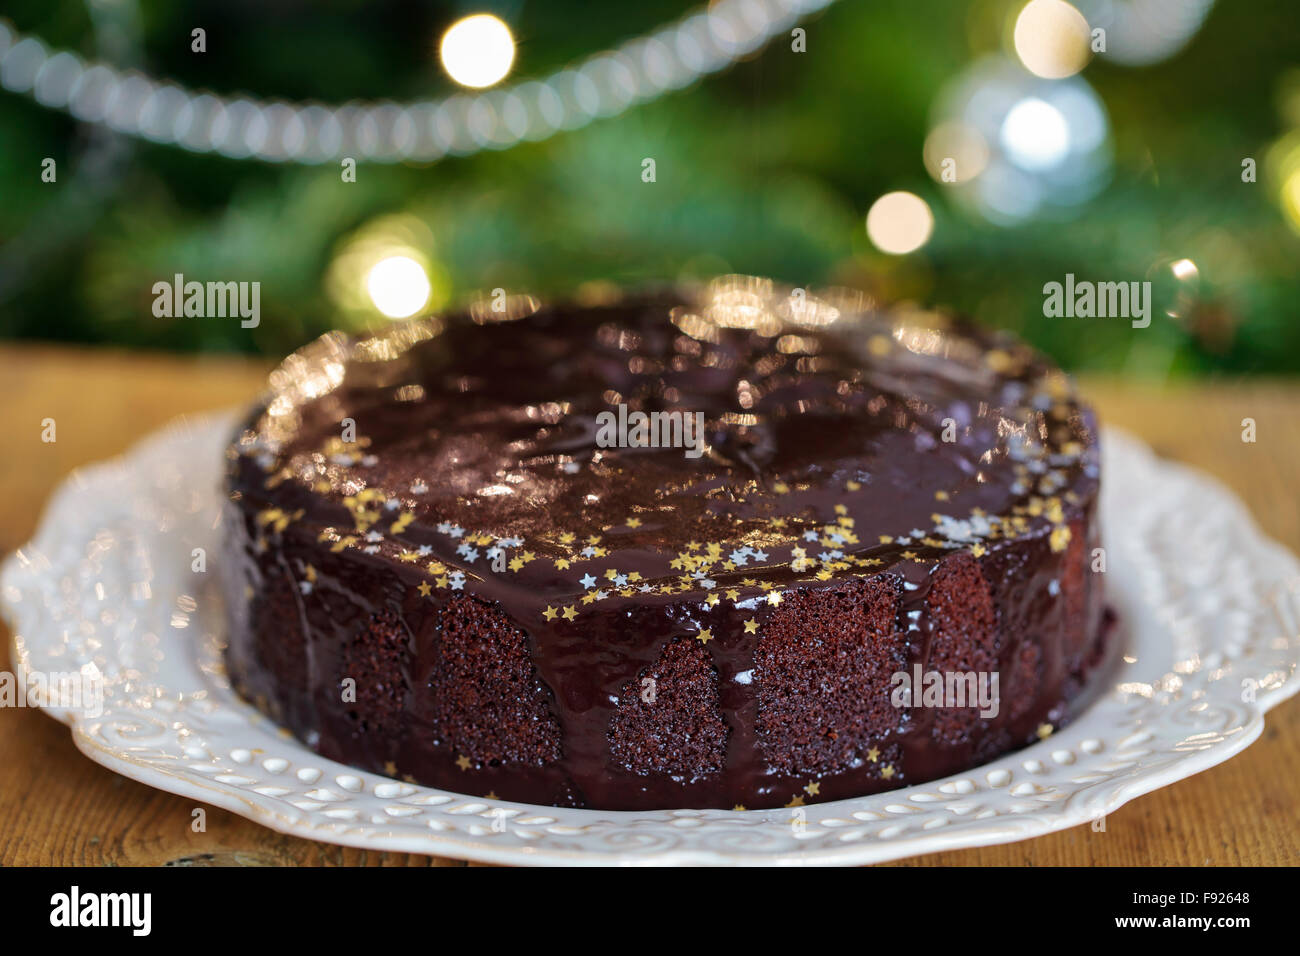 Ginger cake with chocolate sauce - Stock Image